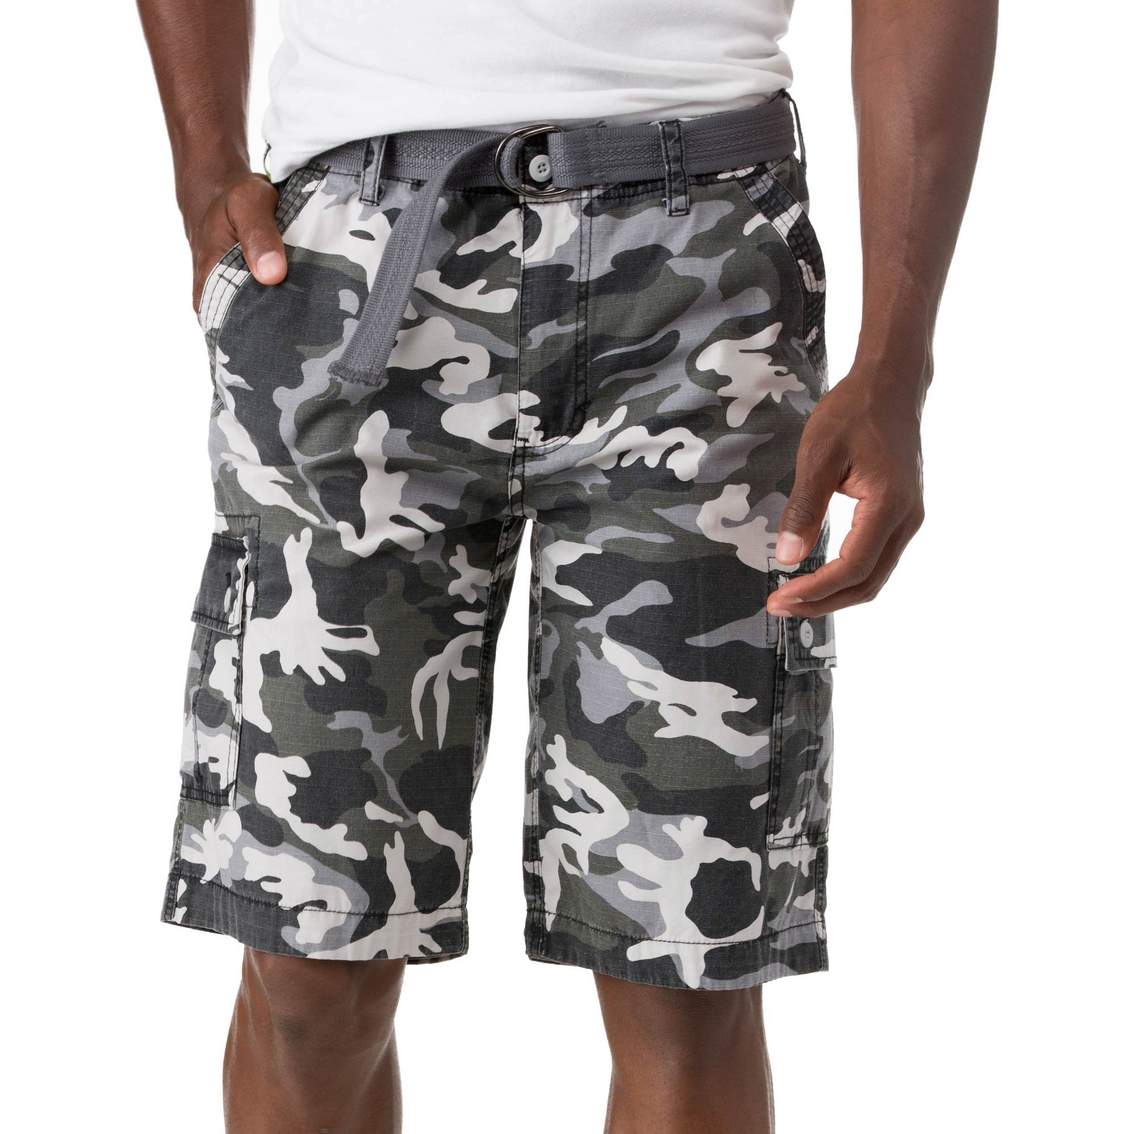 61c953379d Wearfirst Belted Camo Cargo Shorts | Shorts | Apparel | Shop The ...